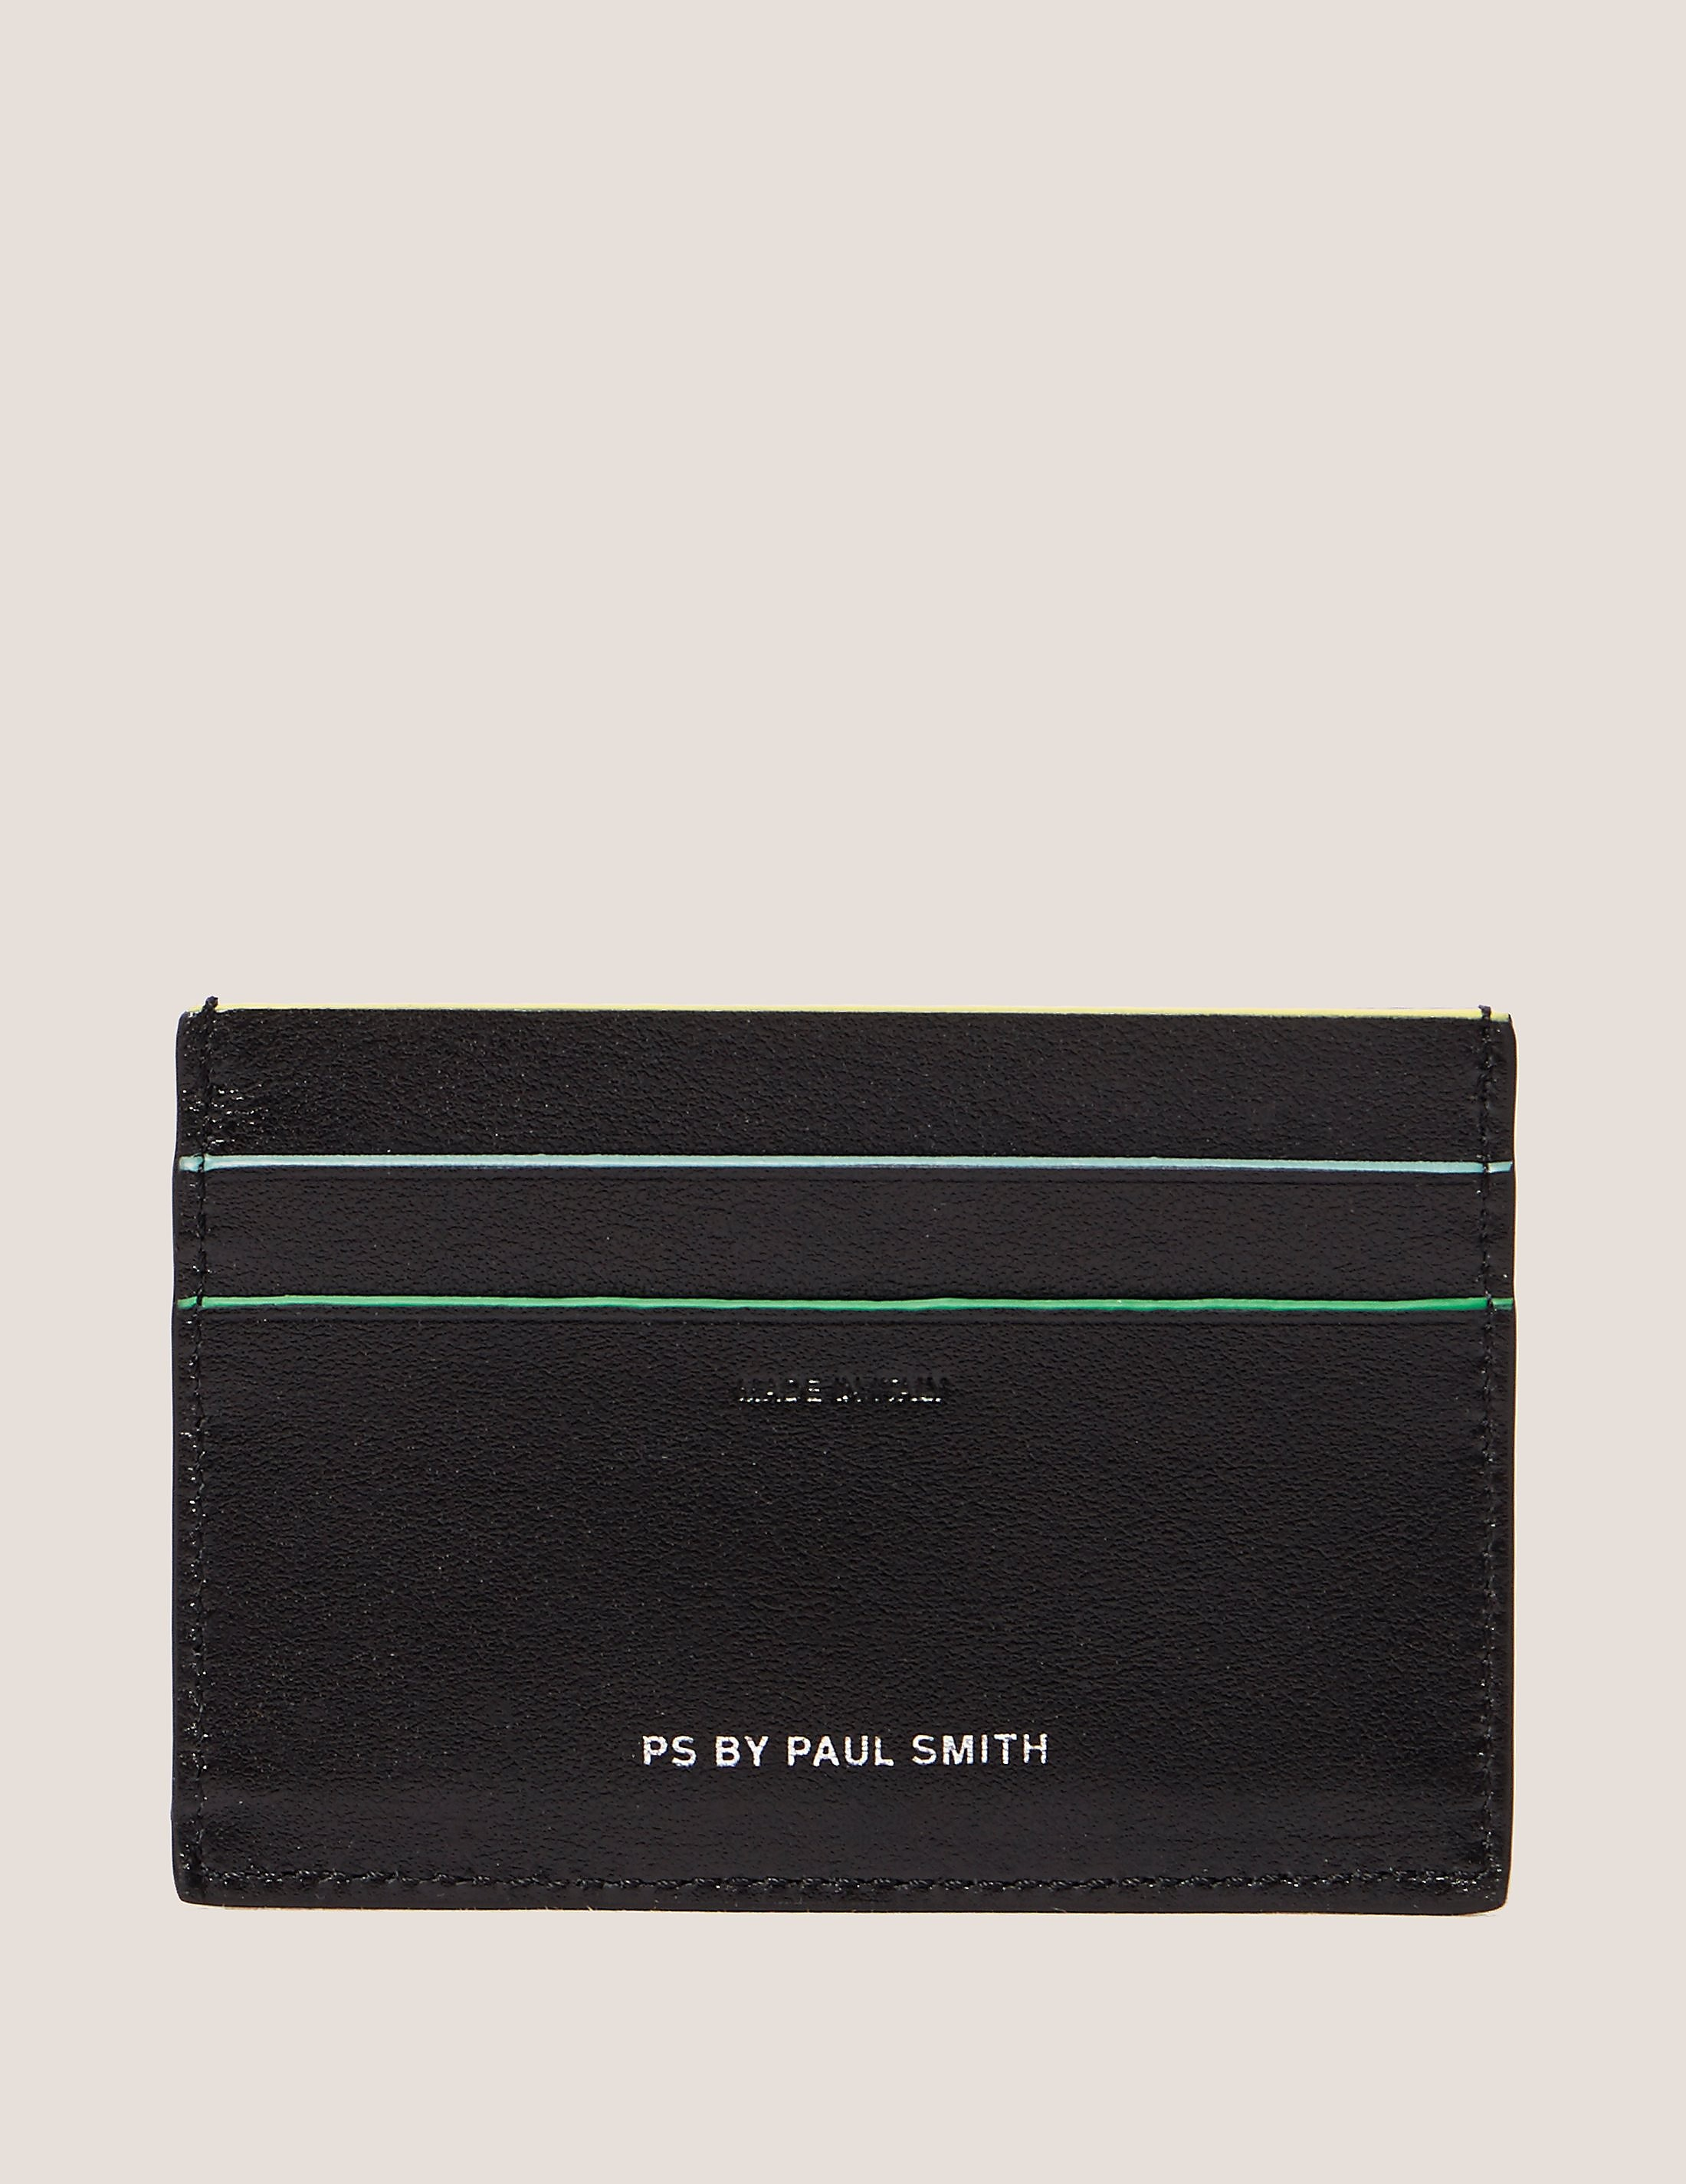 Paul Smith Accent Credit Card Holder